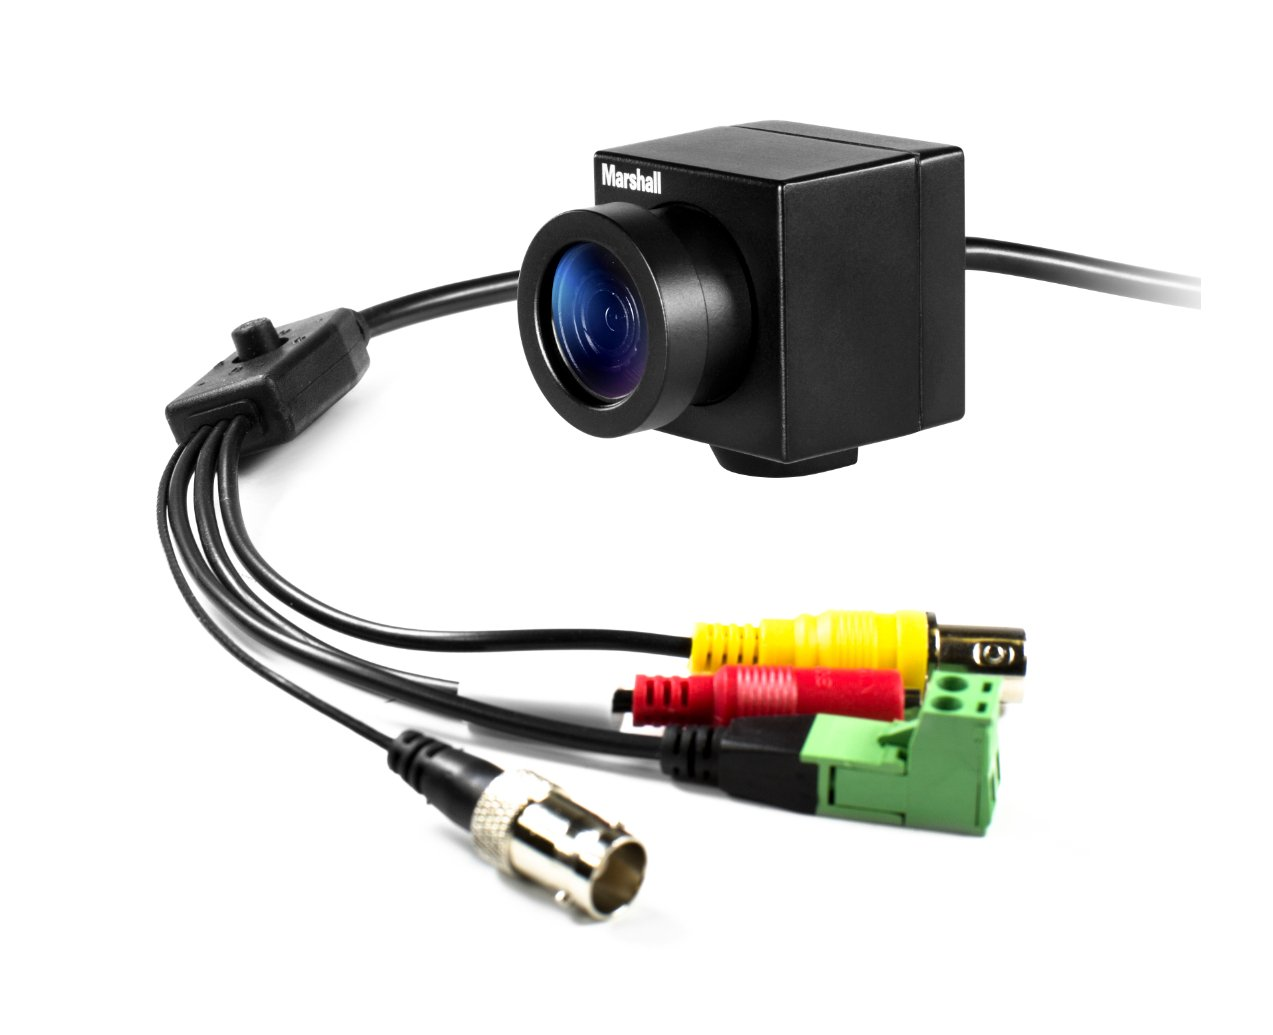 Full HD Weatherproof Mini Non-Broadcast Camera with 3.7mm Lens